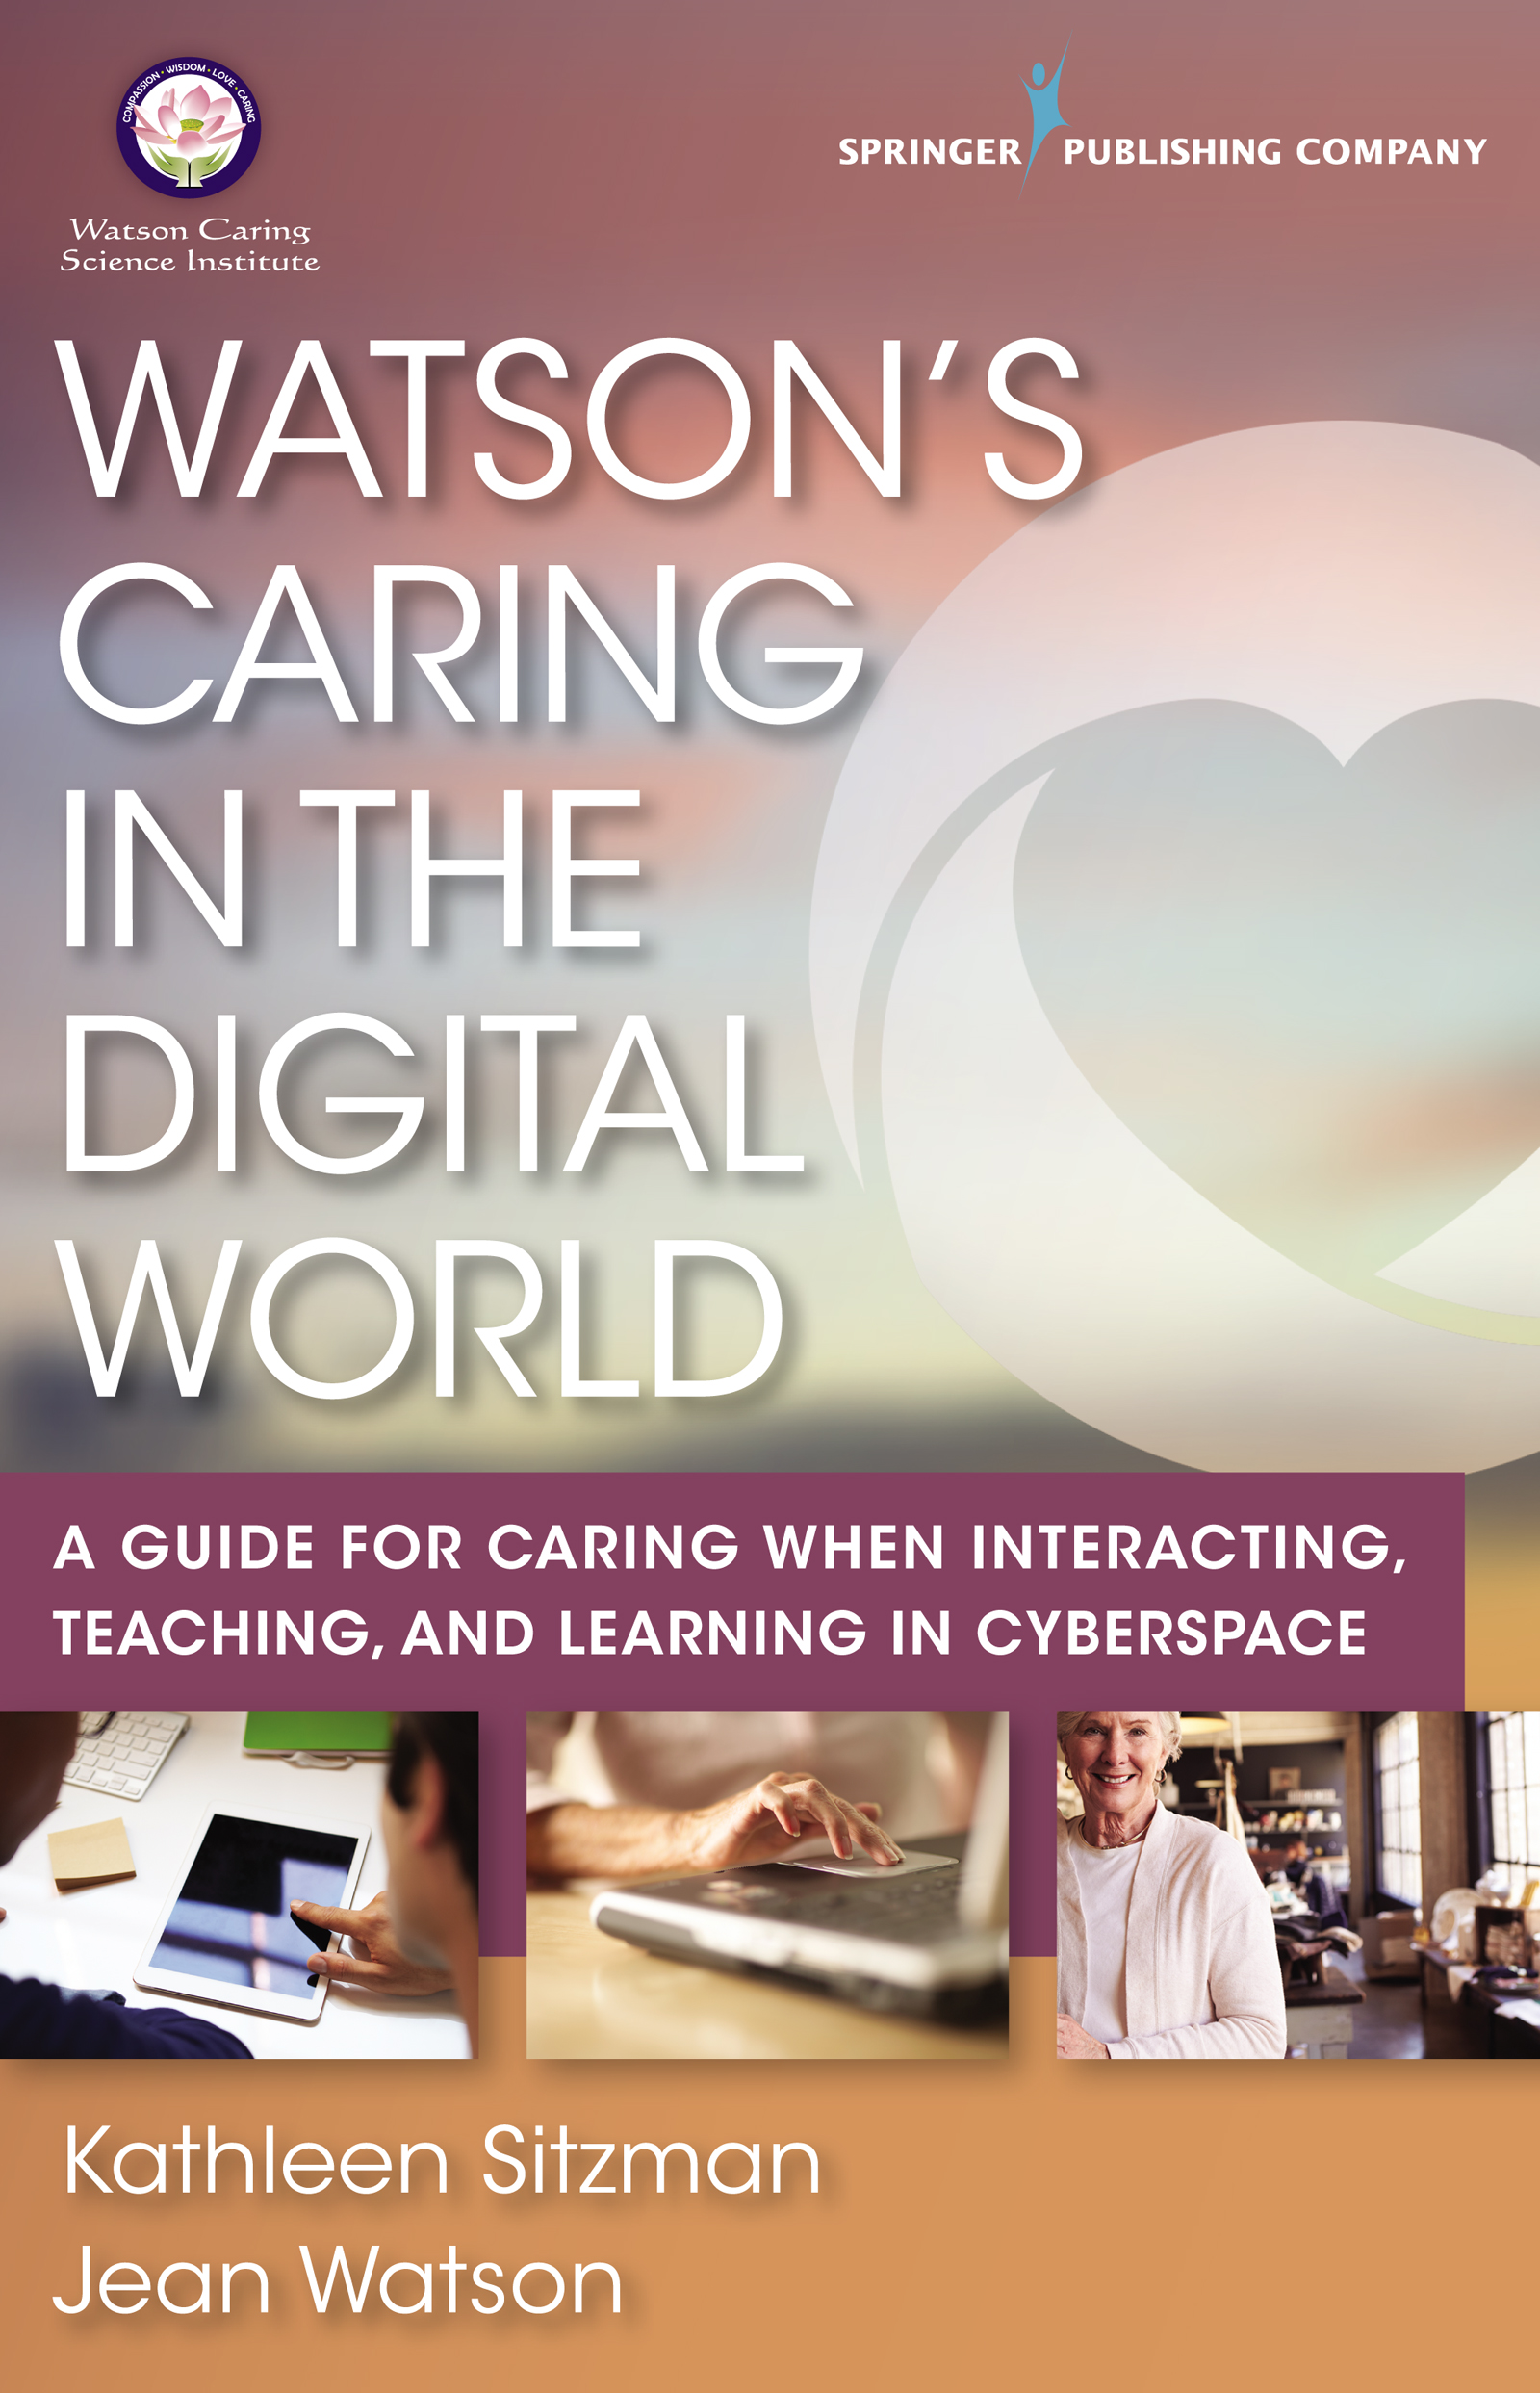 Watson's Caring in the Digital World - This book helps students, faculty, and professionals learn what it takes to convey and sustain caring in digital environments. Many universities, community colleges, and healthcare facilities make this a required reading for those who will be communicating with colleagues, patients, and students via phone, text, e-mail, or social media forums.Buy Now from Publisher (20% off Coupon Code: SPC20FS)Click HERE to download the Publisher's FlyerBuy Now from Amazon